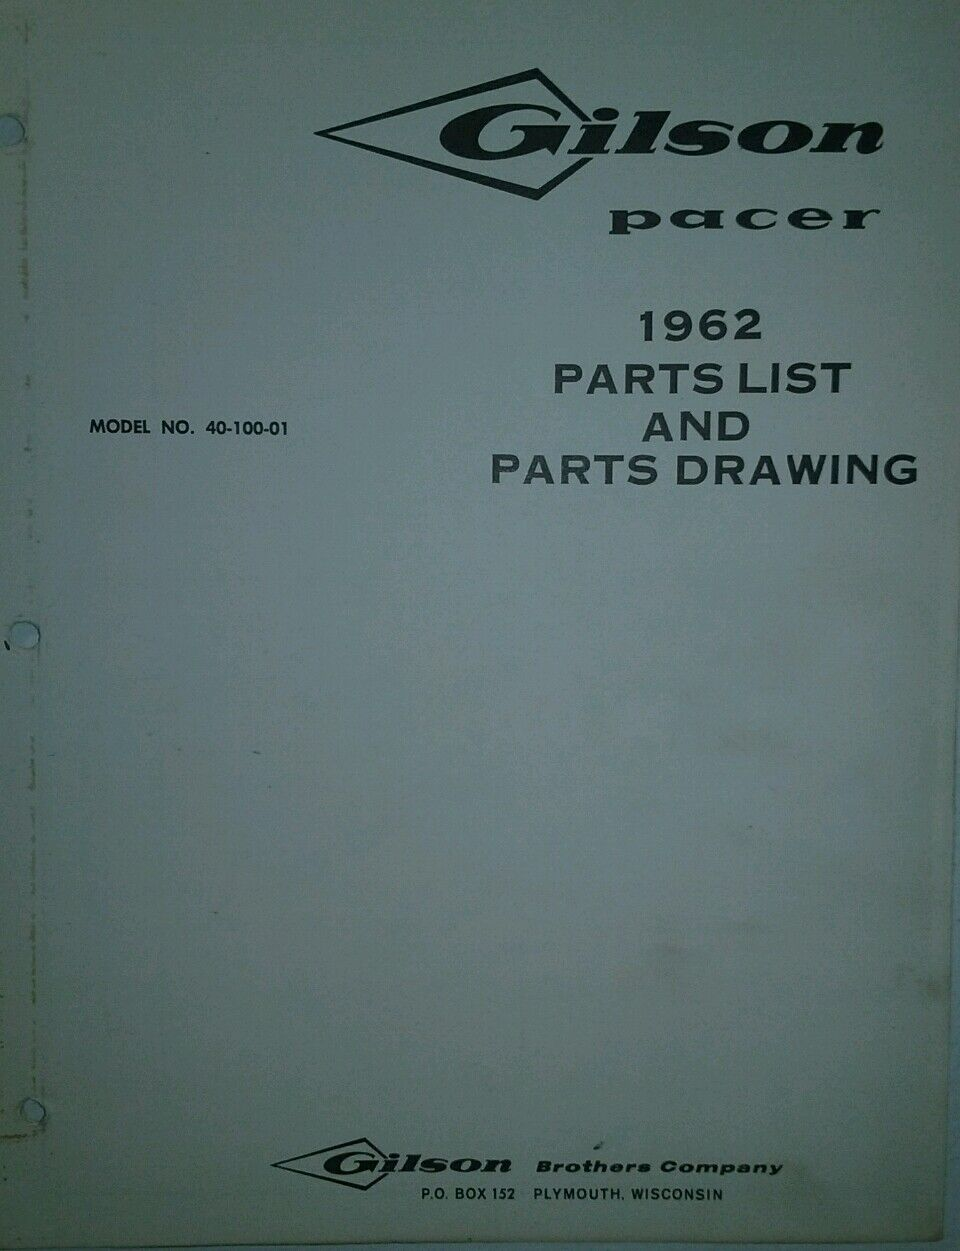 Gilson Pacer Lawn & Garden Tractor 1962 Parts Manual Riding Mower  Simplicity Lawn Mower Parts Diagram Gilson Lawn Mower Parts Diagram